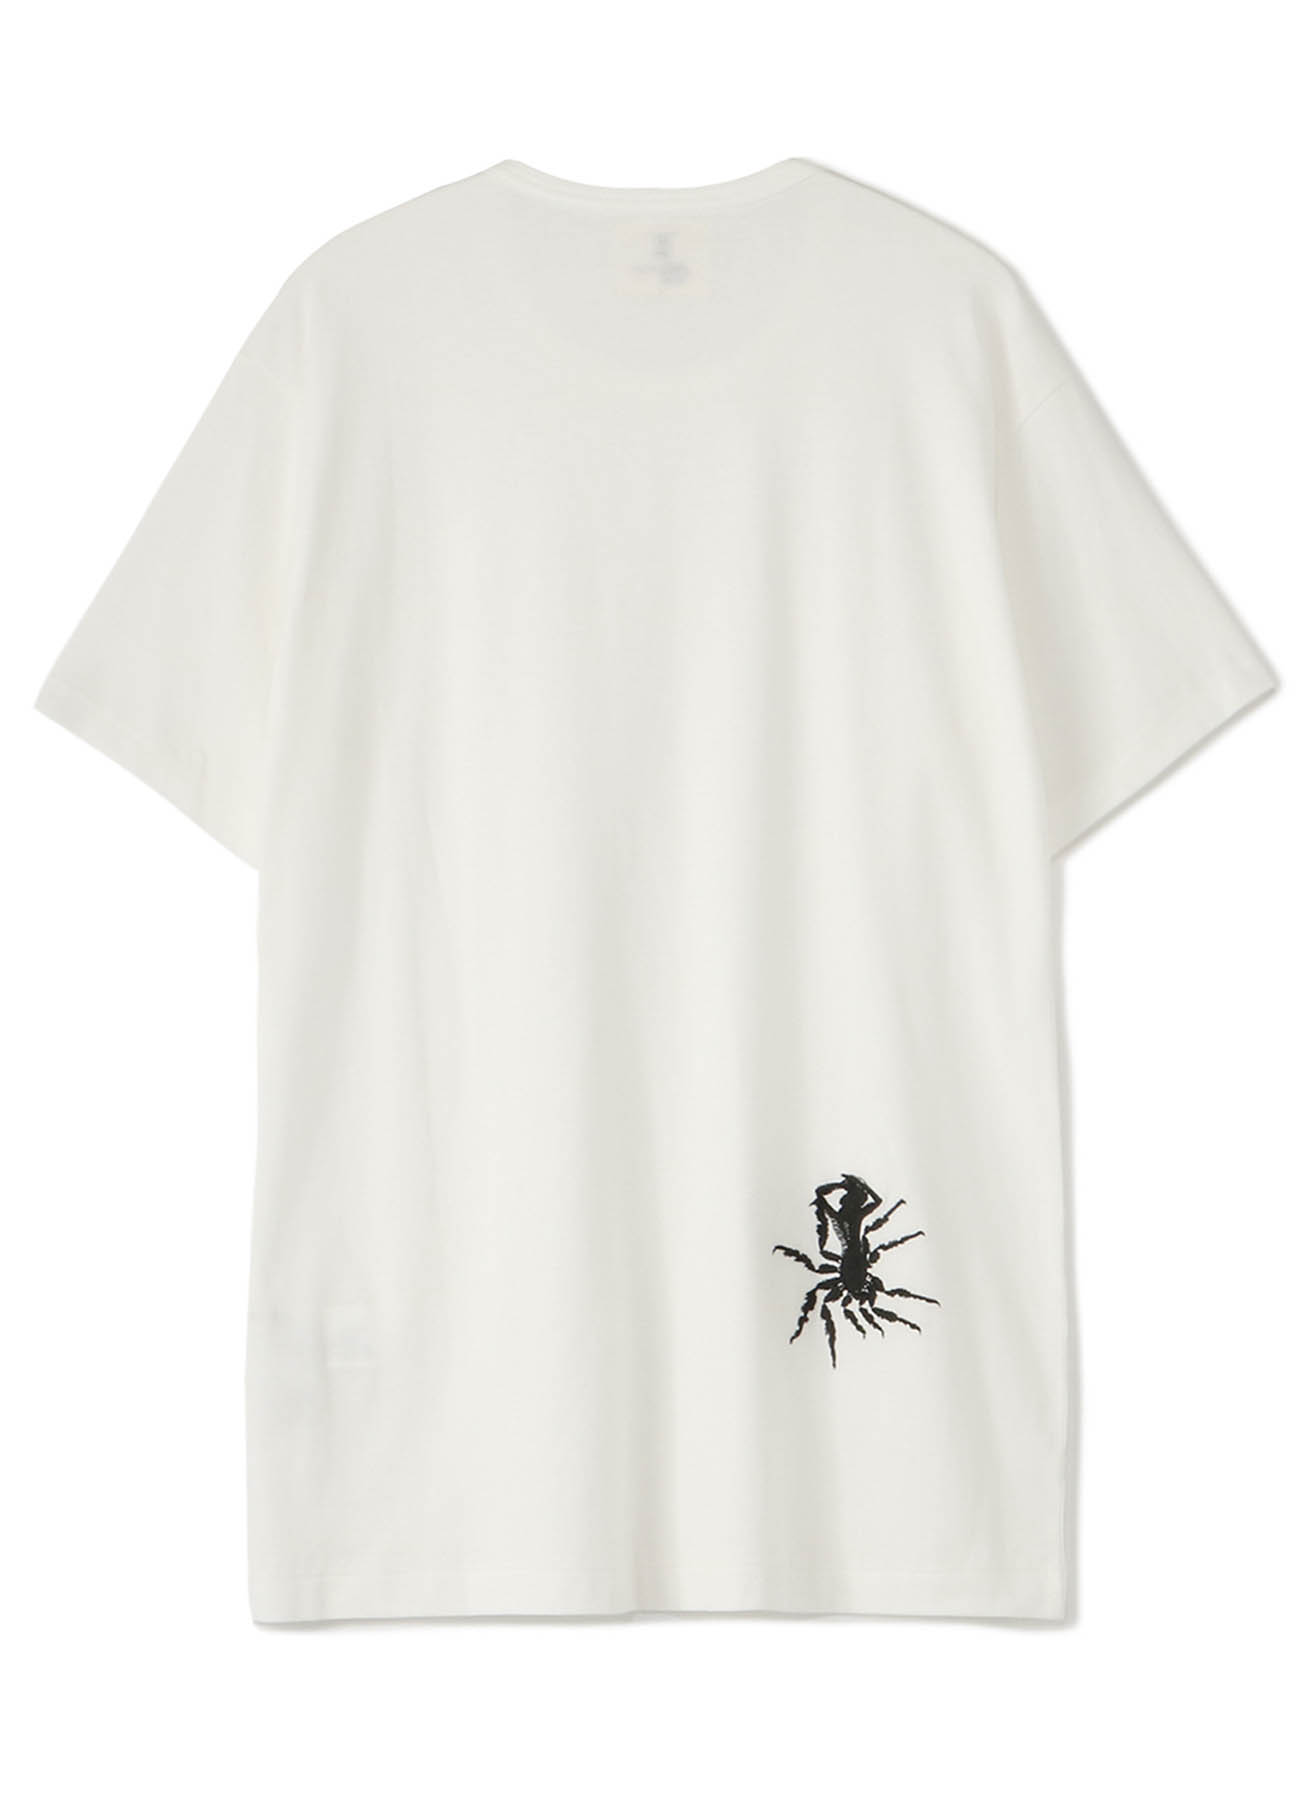 B/Cotton Embroidery S/S Tee